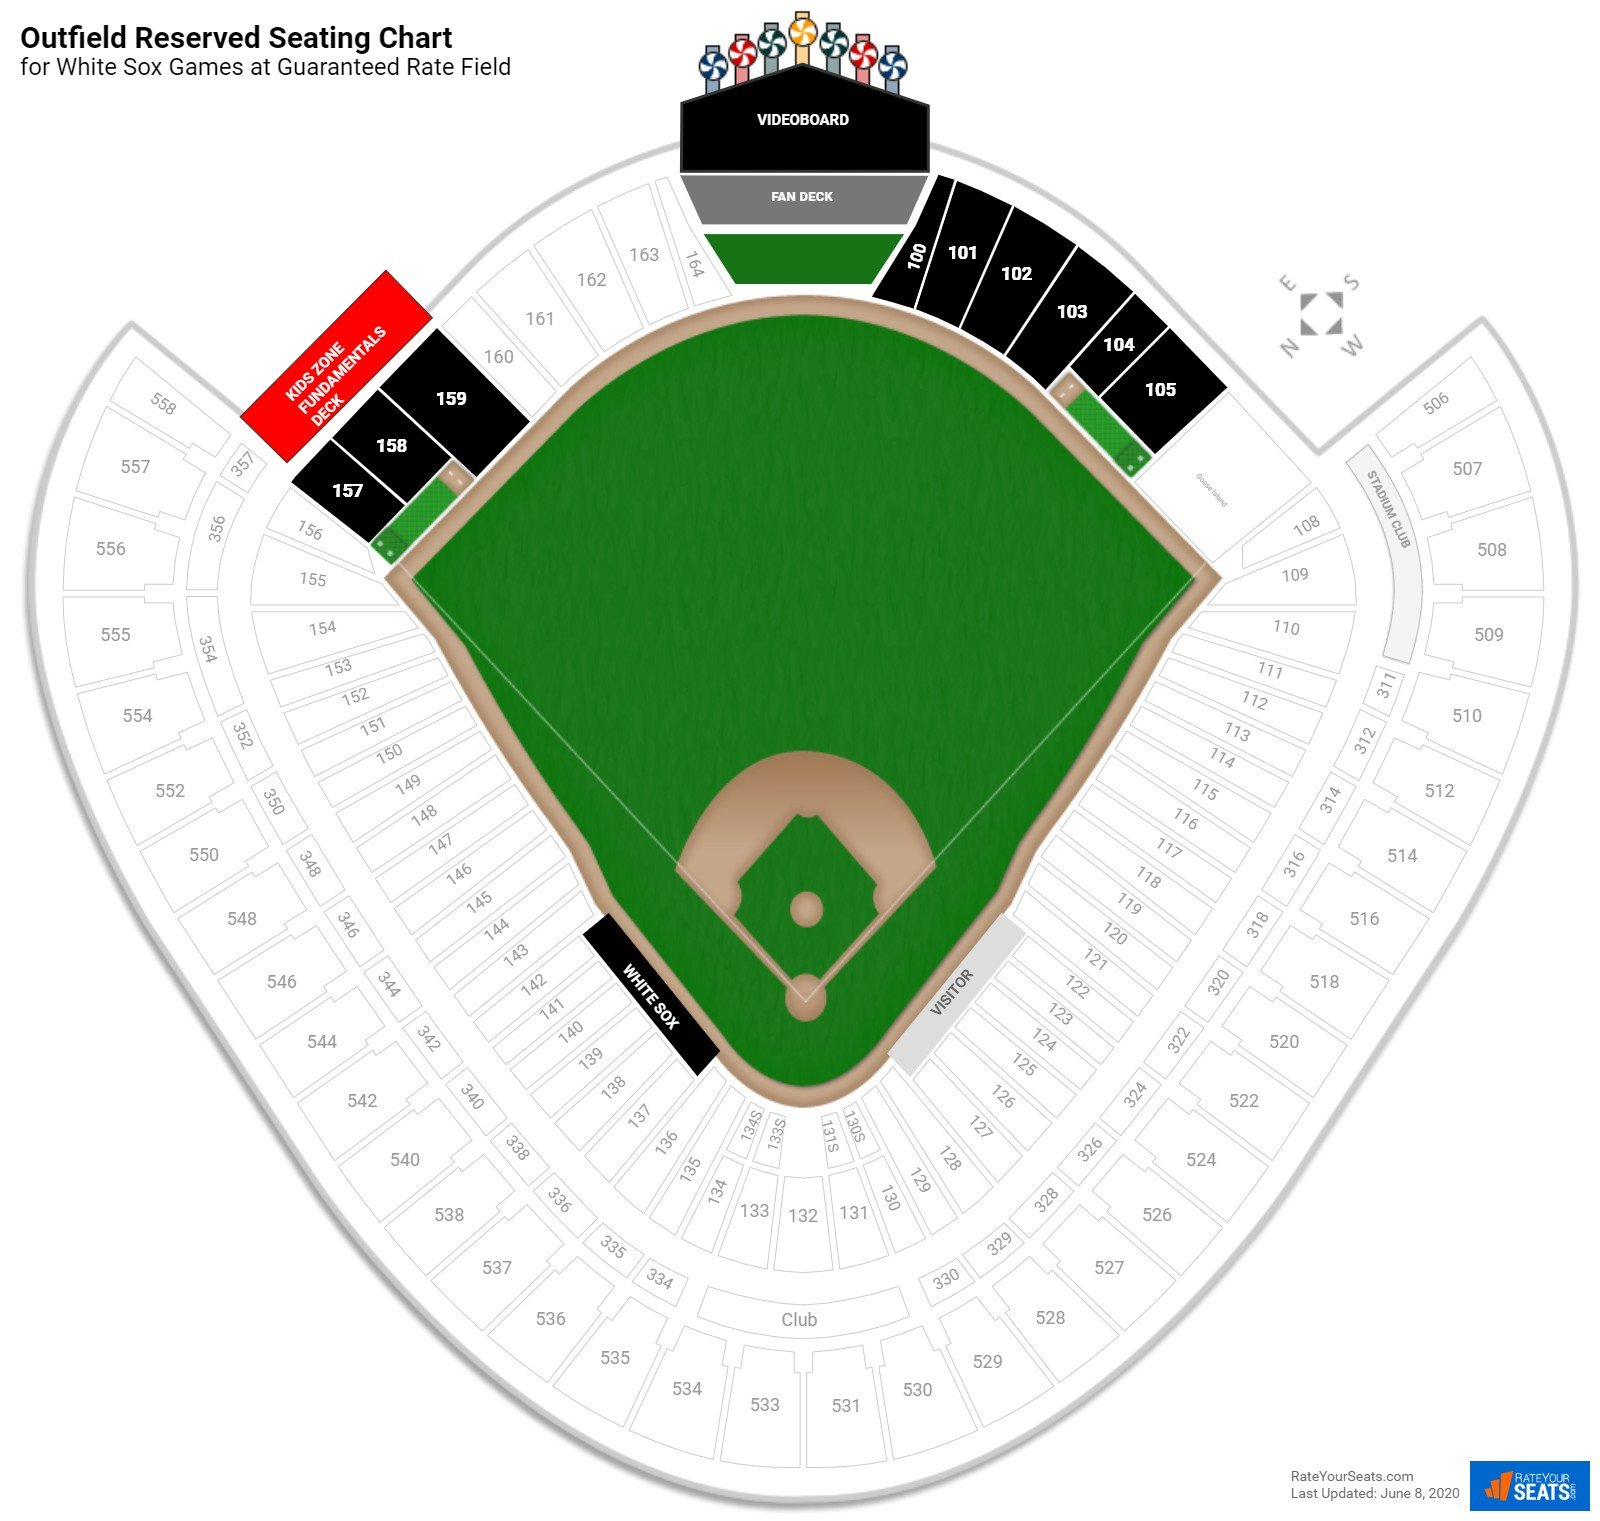 U.S. Cellular Field Outfield Reserved seating chart